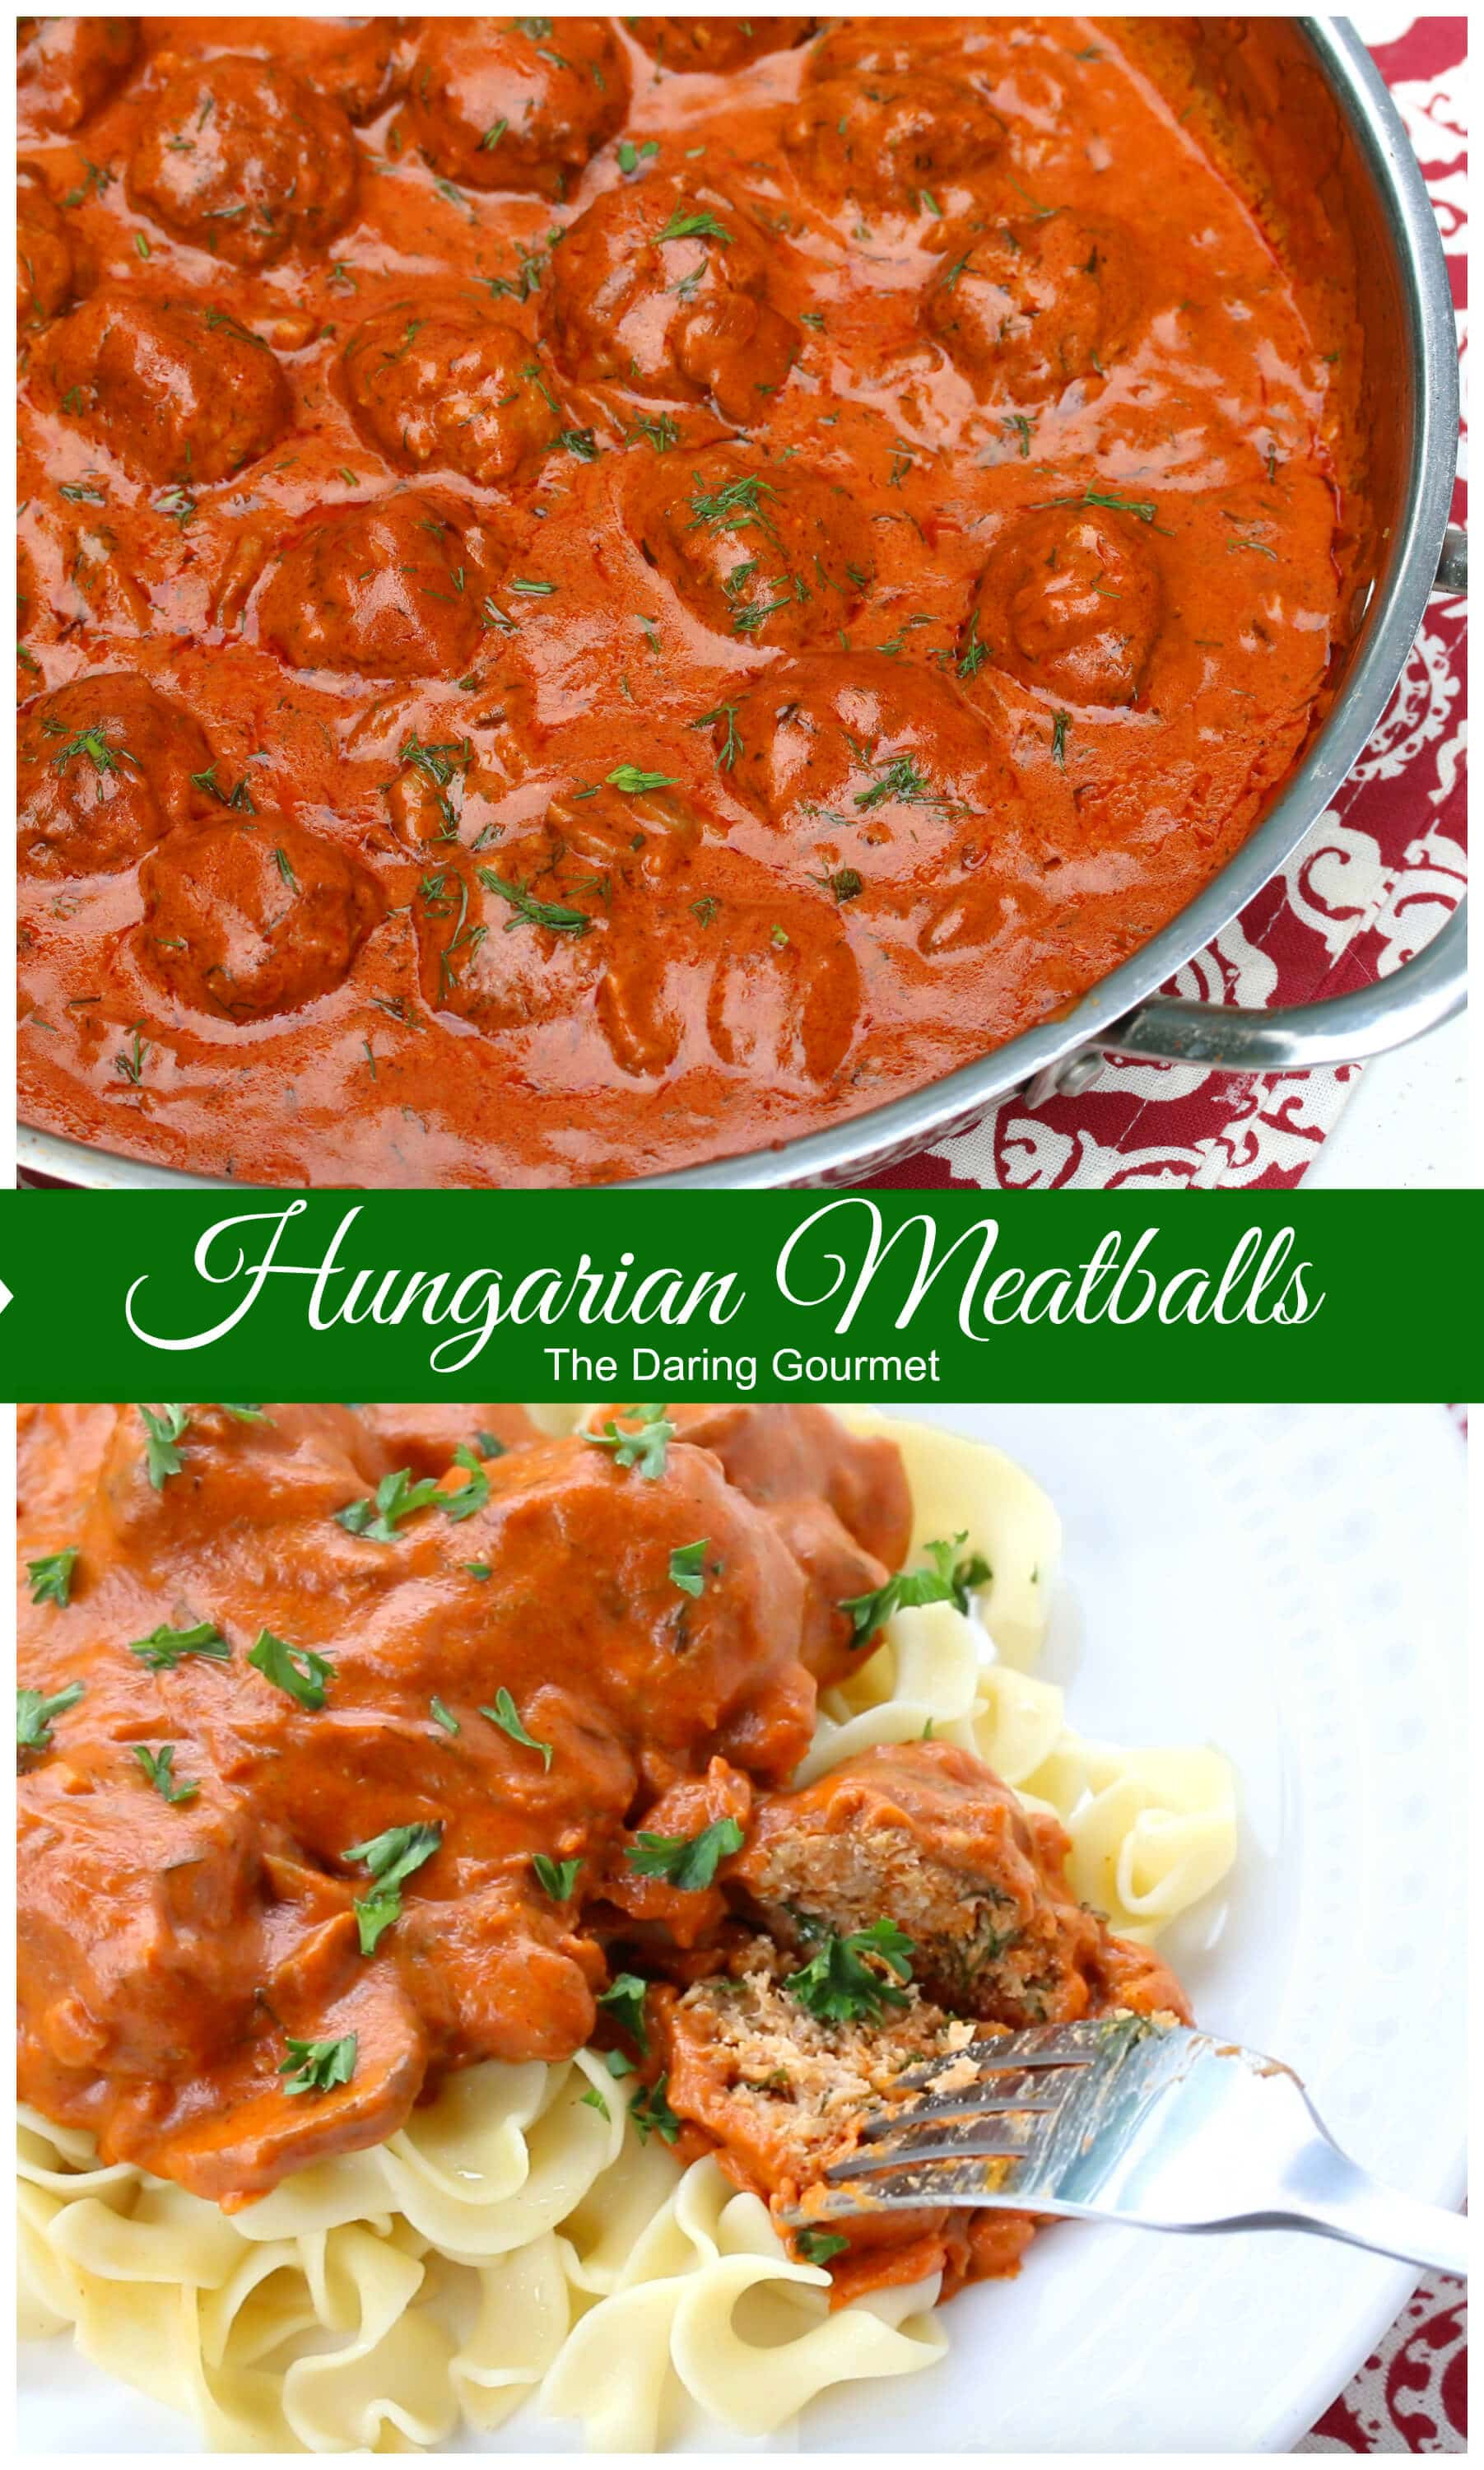 hungarian meatballs recipe paprika creamy sauce dill mushrooms veal beef chicken pork turkey